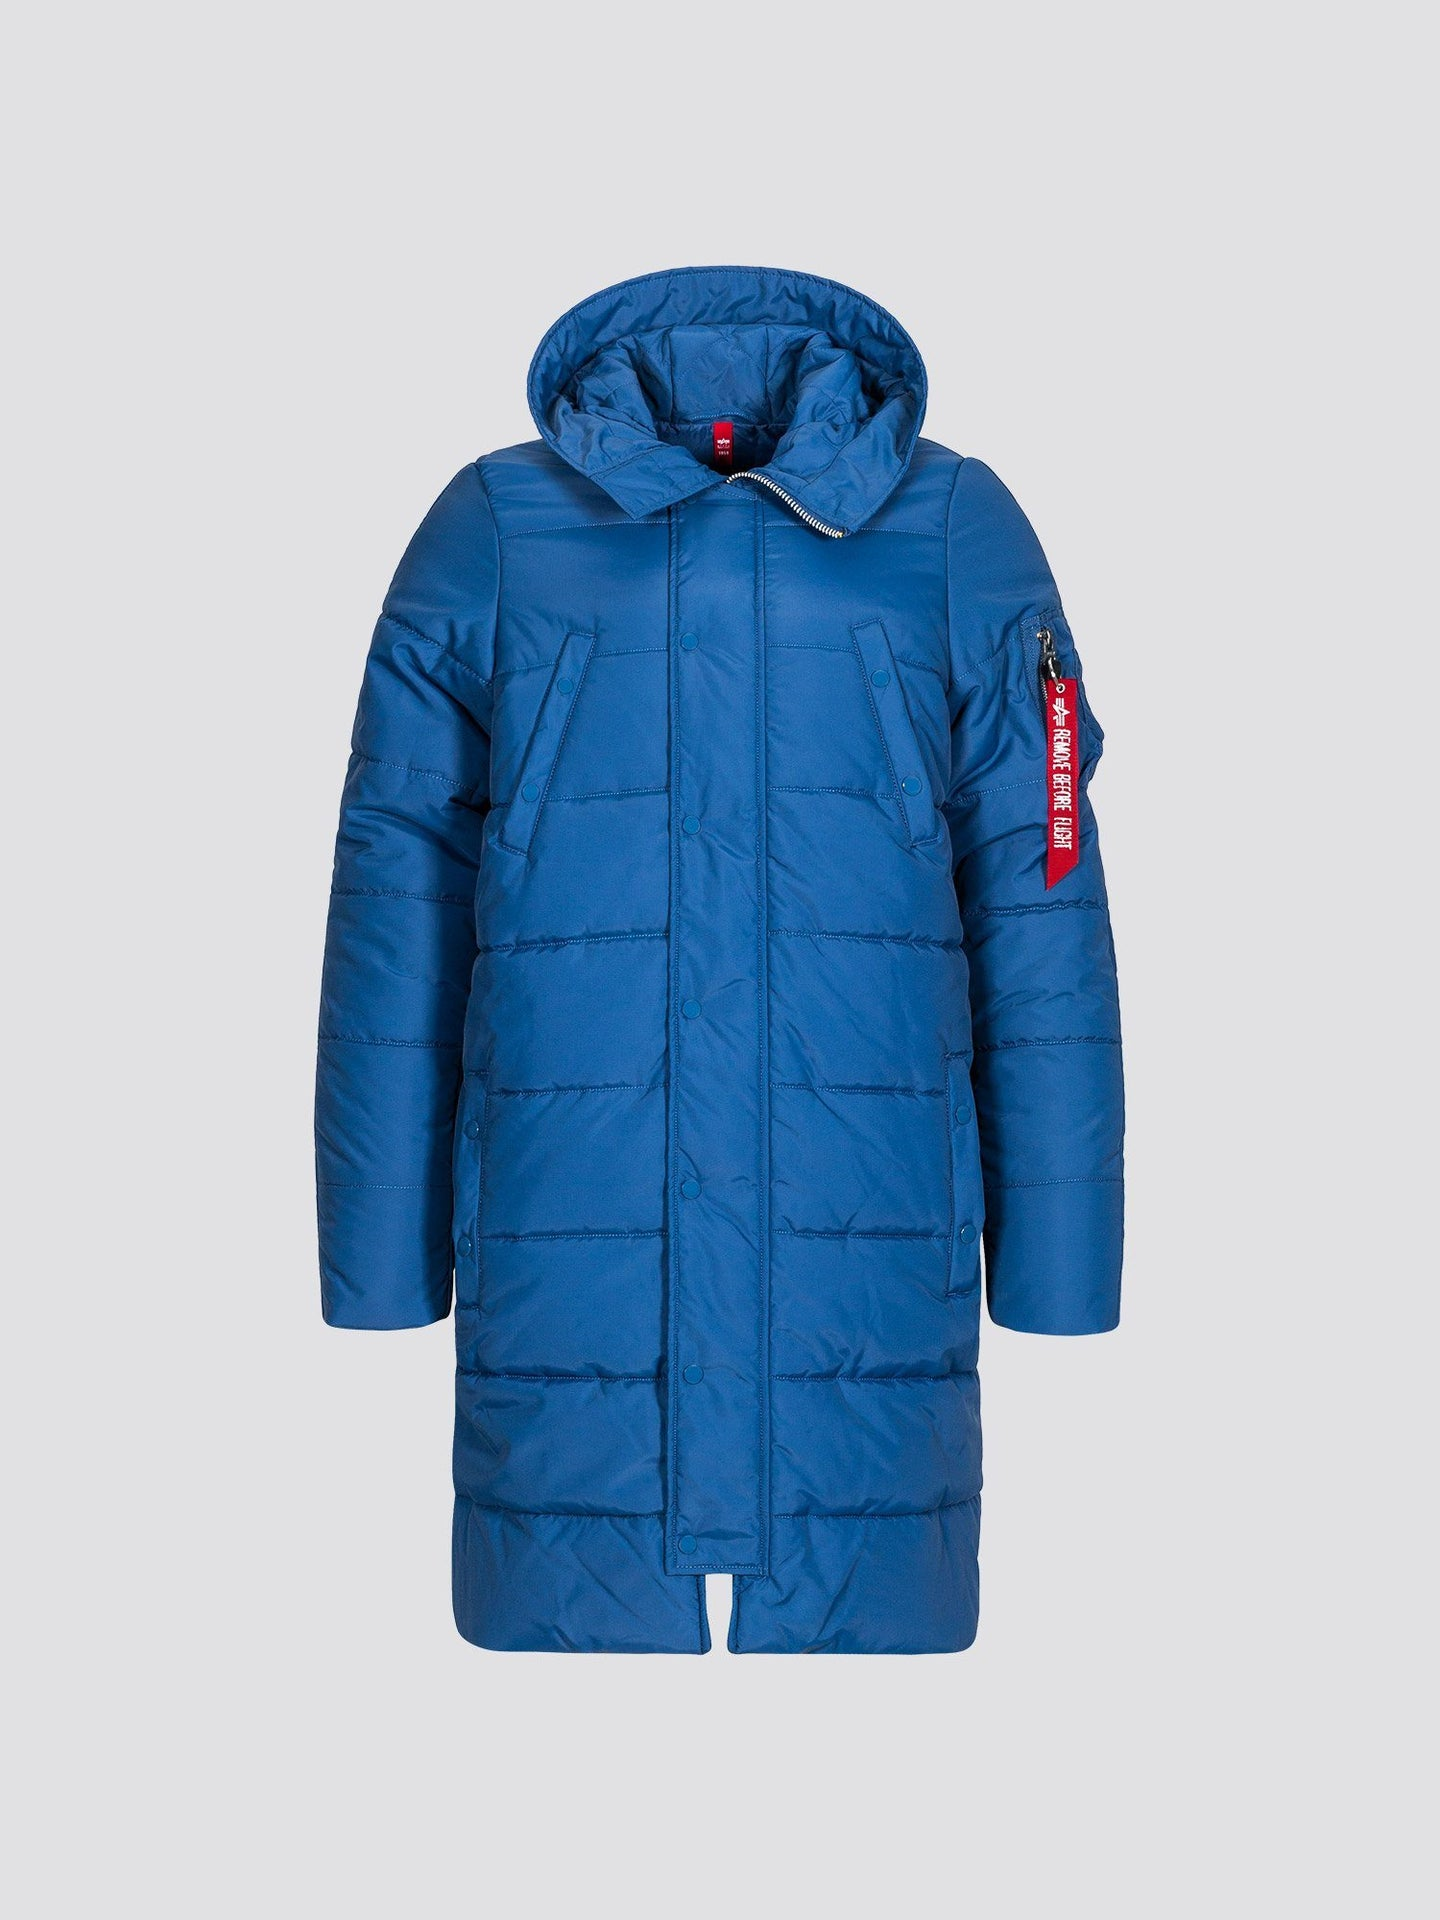 N-3B REVERB PARKA OUTERWEAR Alpha Industries BLUE NO. 9 S